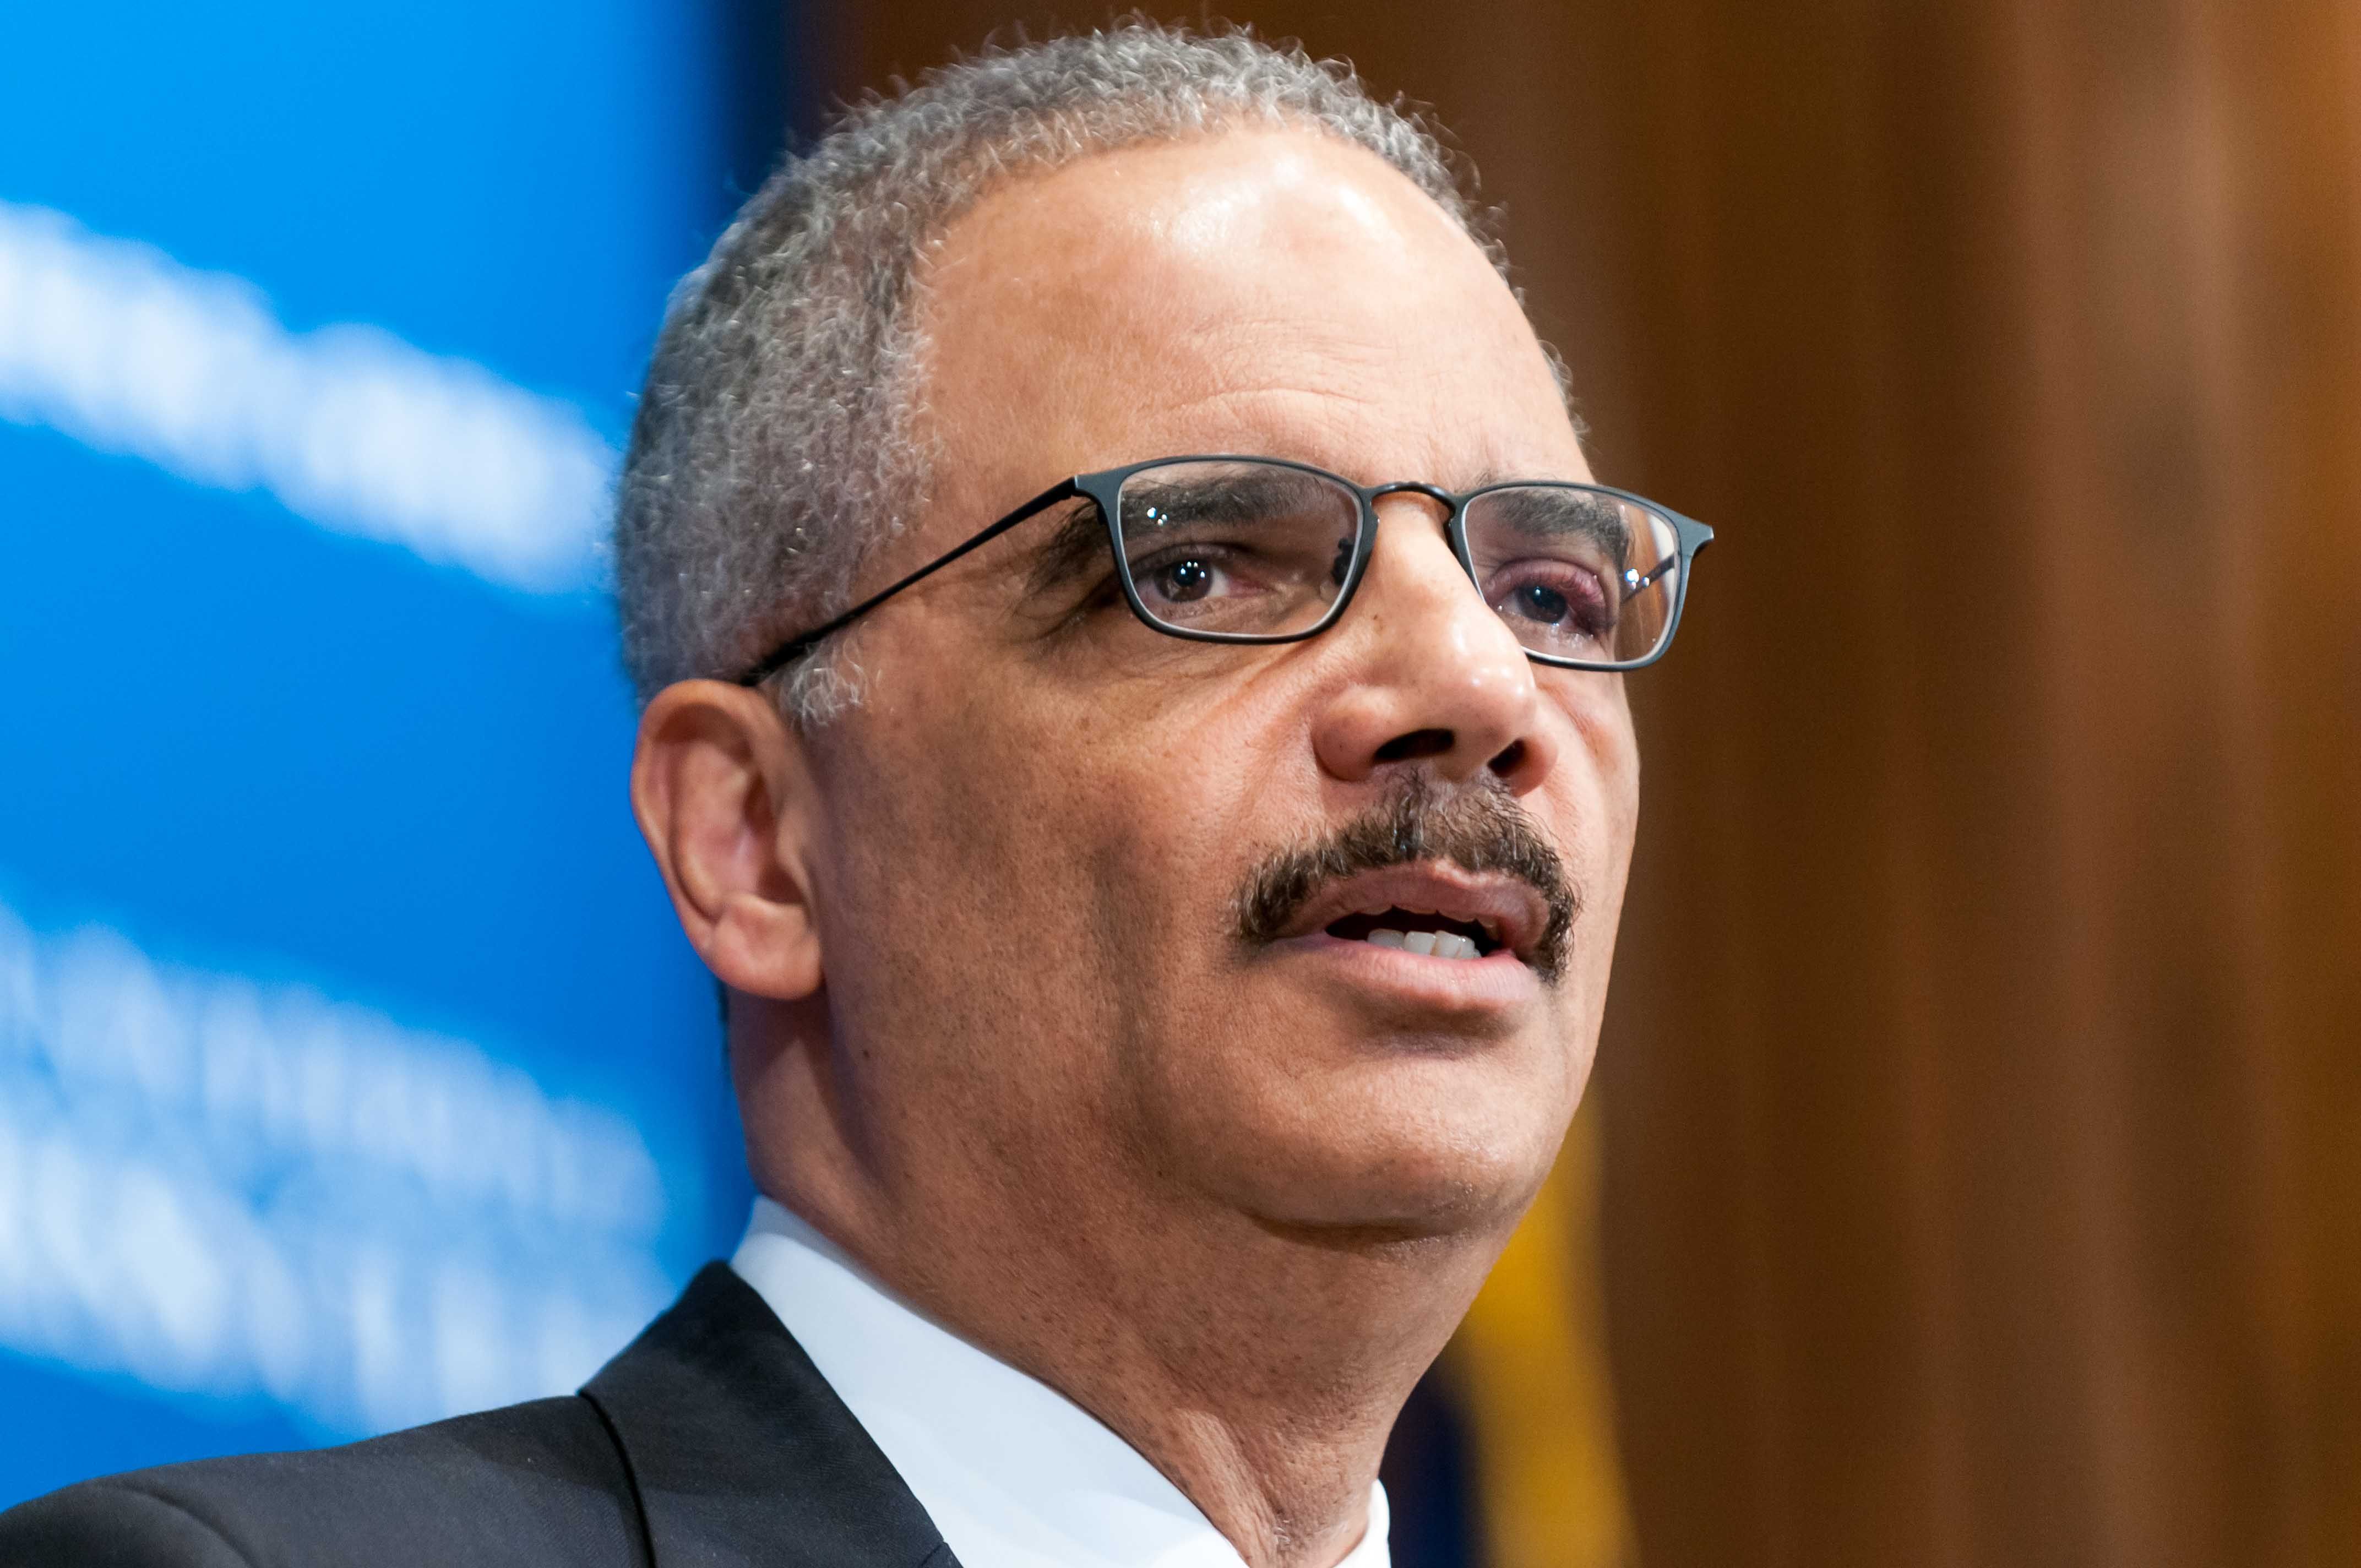 Eric Holder NPC Noel St. John 3 Feb. 17, 2015